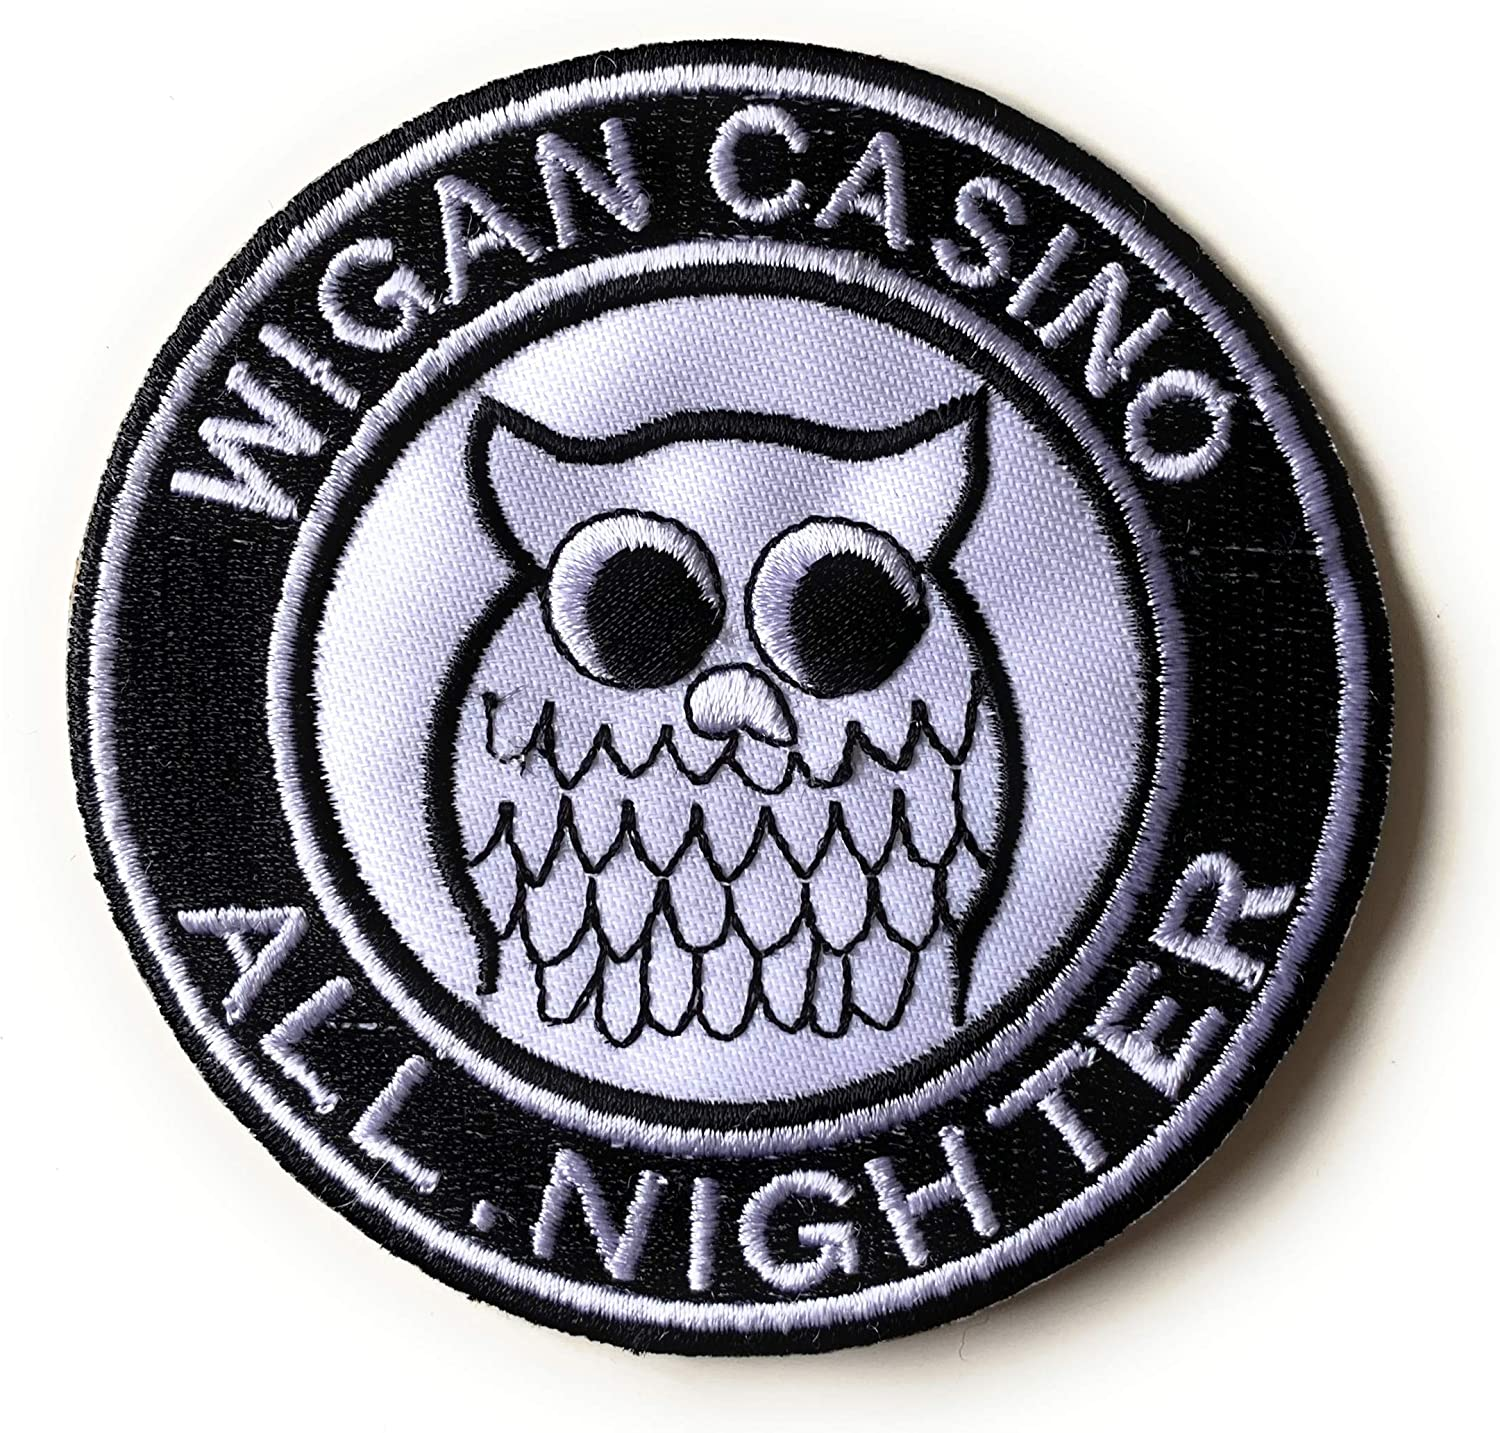 Wigan Casino All Nighter Scooter/Northern Soul – Parche para planchar para coser